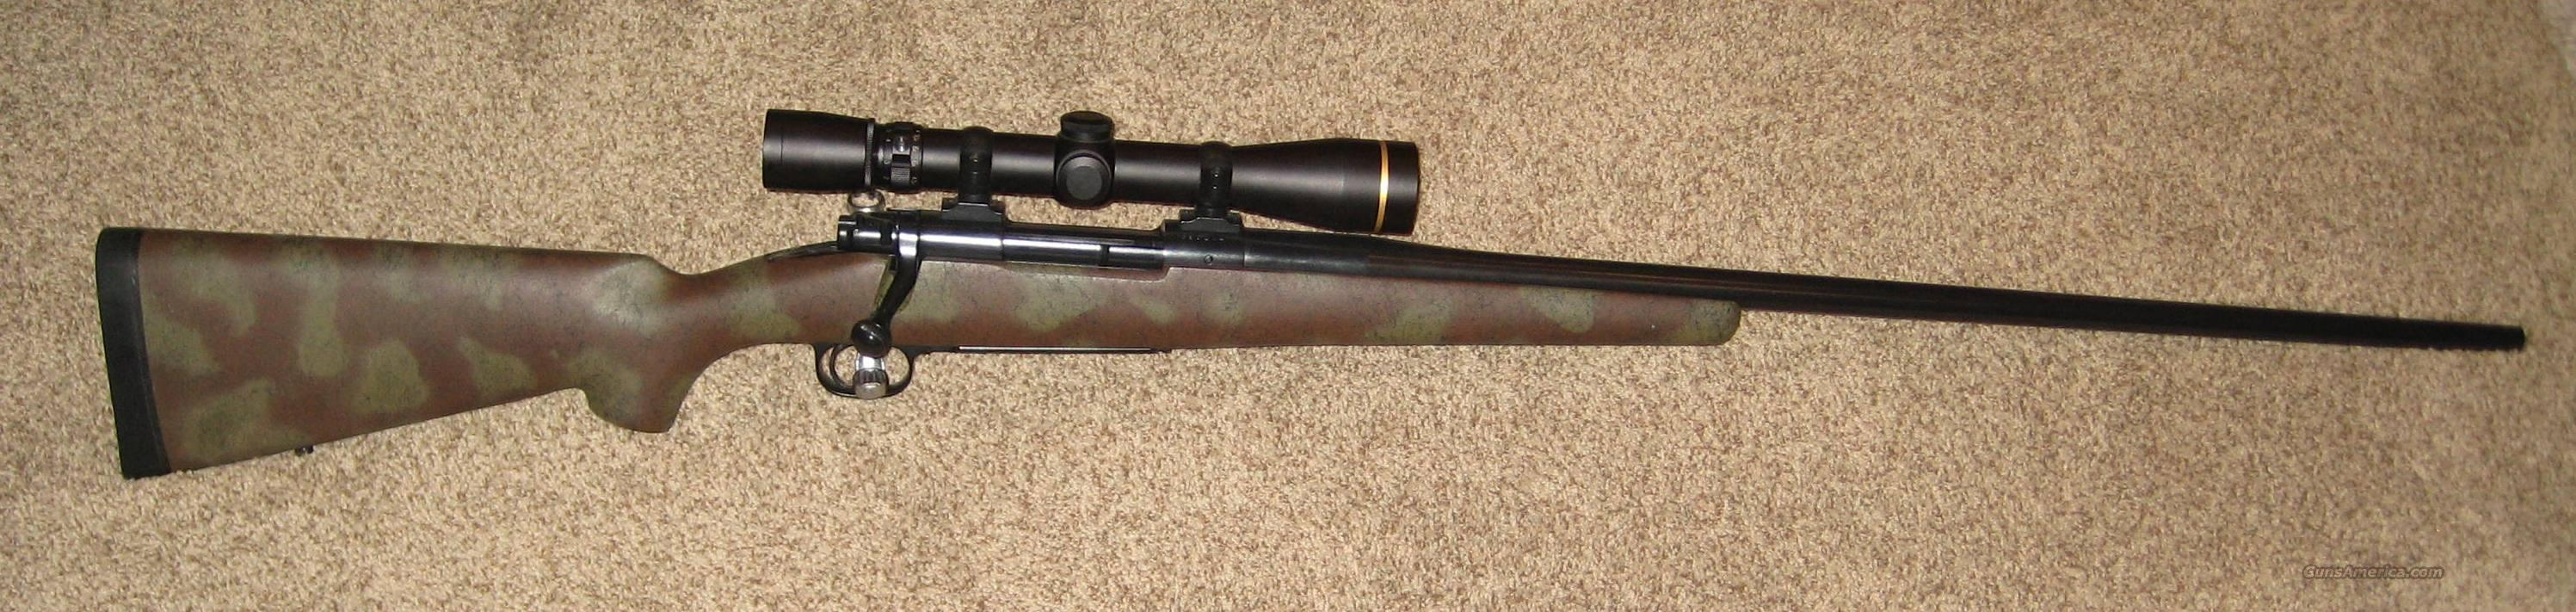 Custom Winchester M70 338 Winchester Magnum  Guns > Rifles > Winchester Rifles - Modern Bolt/Auto/Single > Model 70 > Post-64